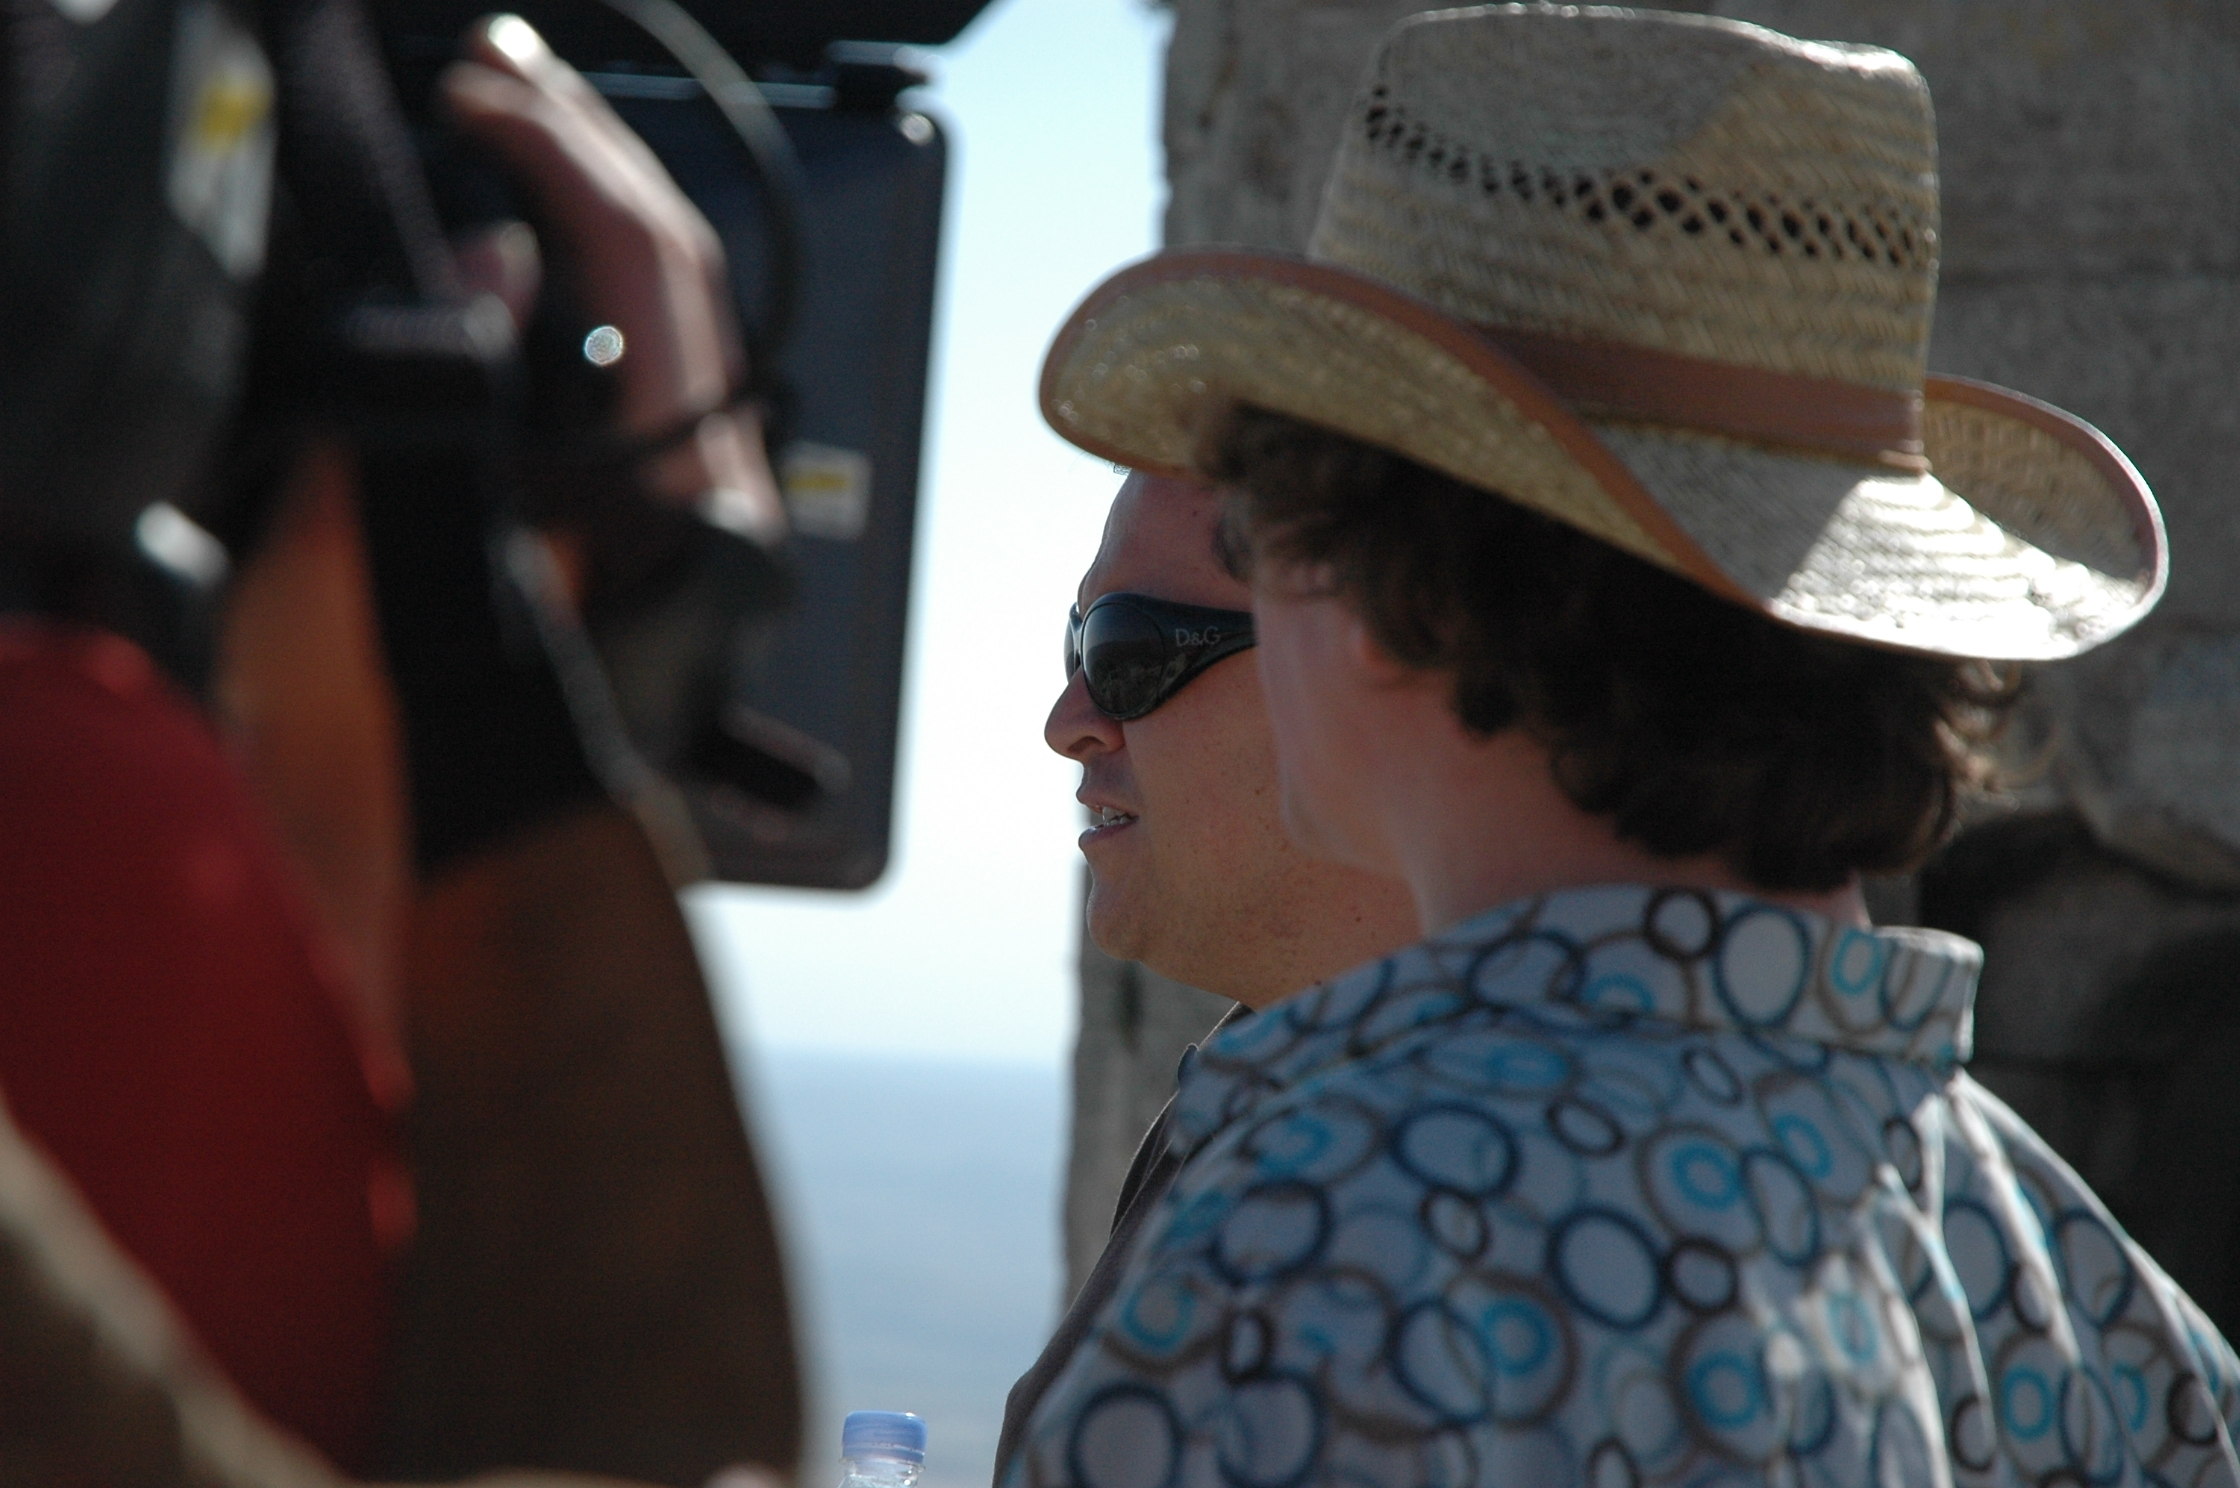 Up close and filming Stewart Innes Syria filming Palmyra Dom Joly